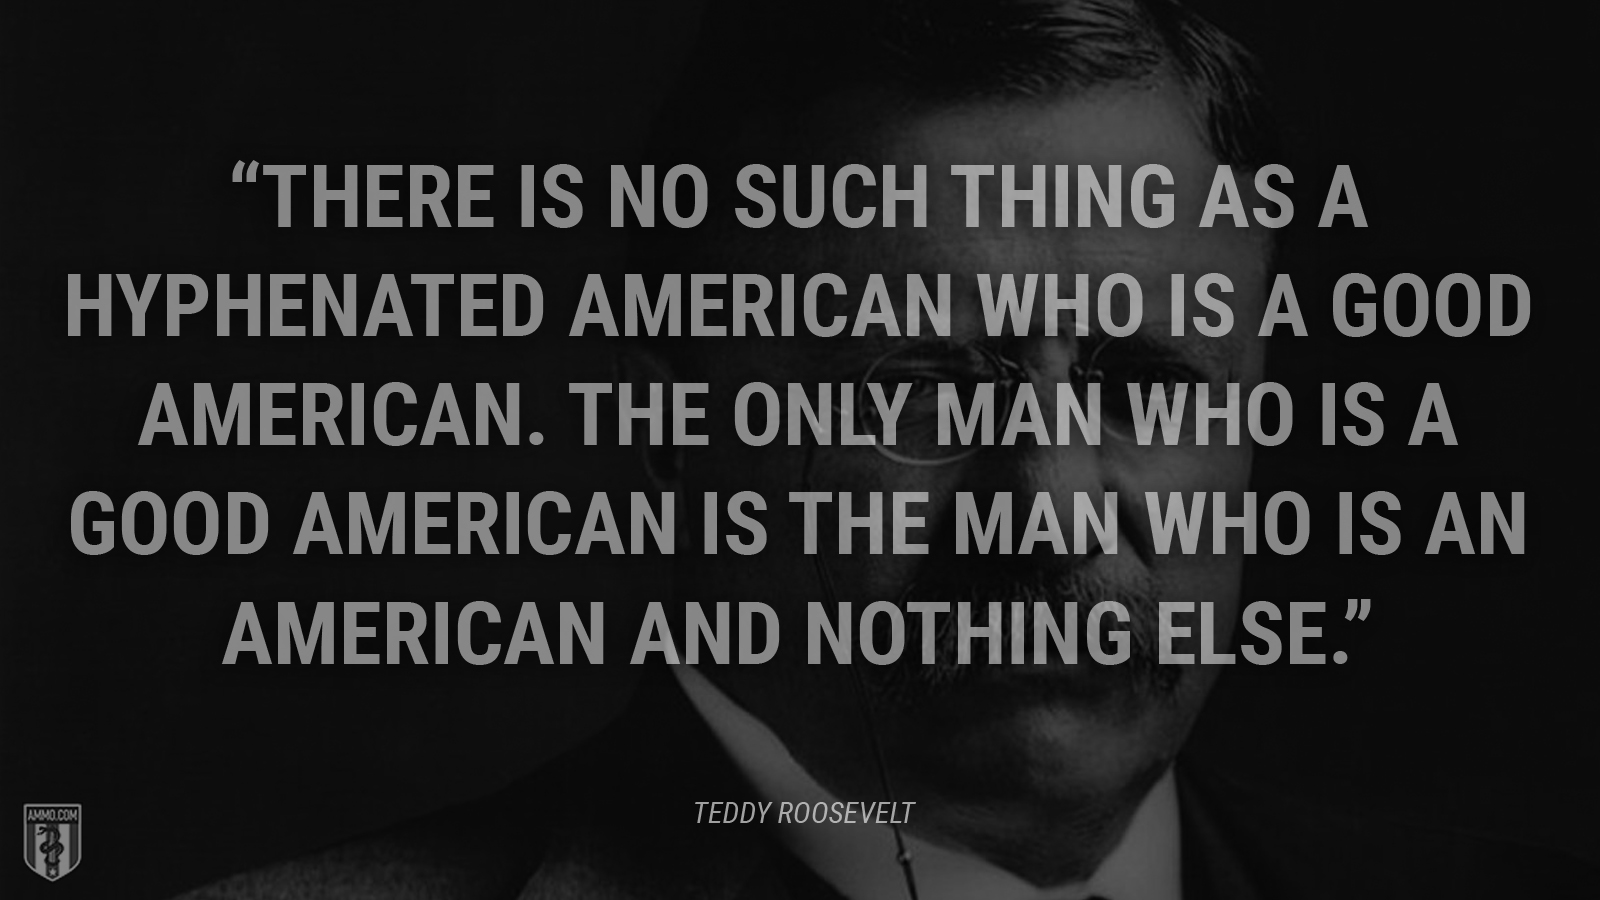 """There is no such thing as a hyphenated American who is a good American. The only man who is a good American is the man who is an American and nothing else."" - Theodore Roosevelt"